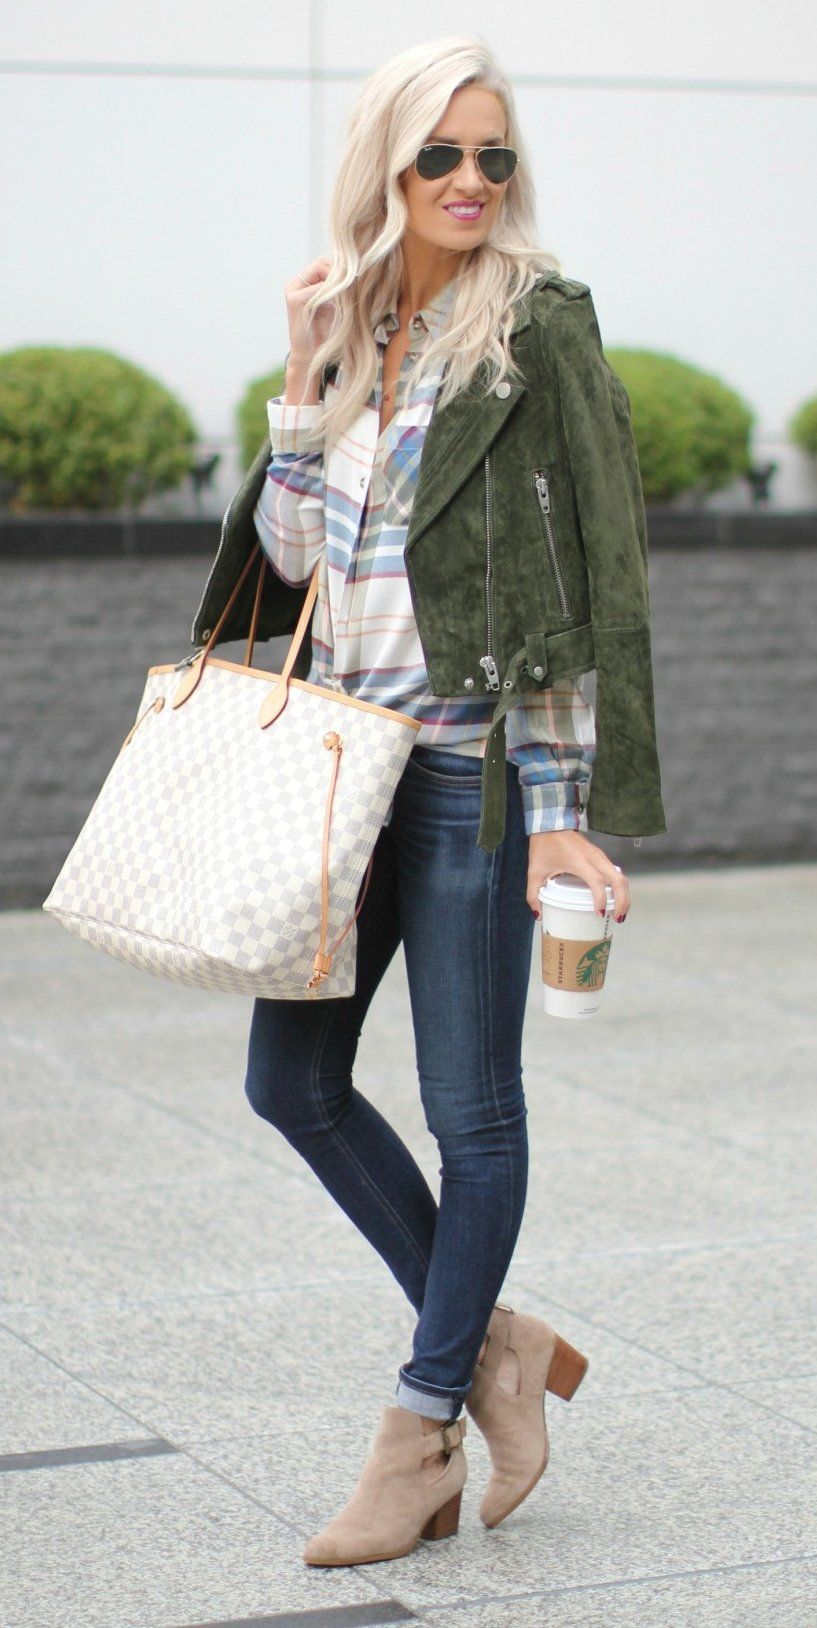 2019 year style- How to camel wear colored jeans